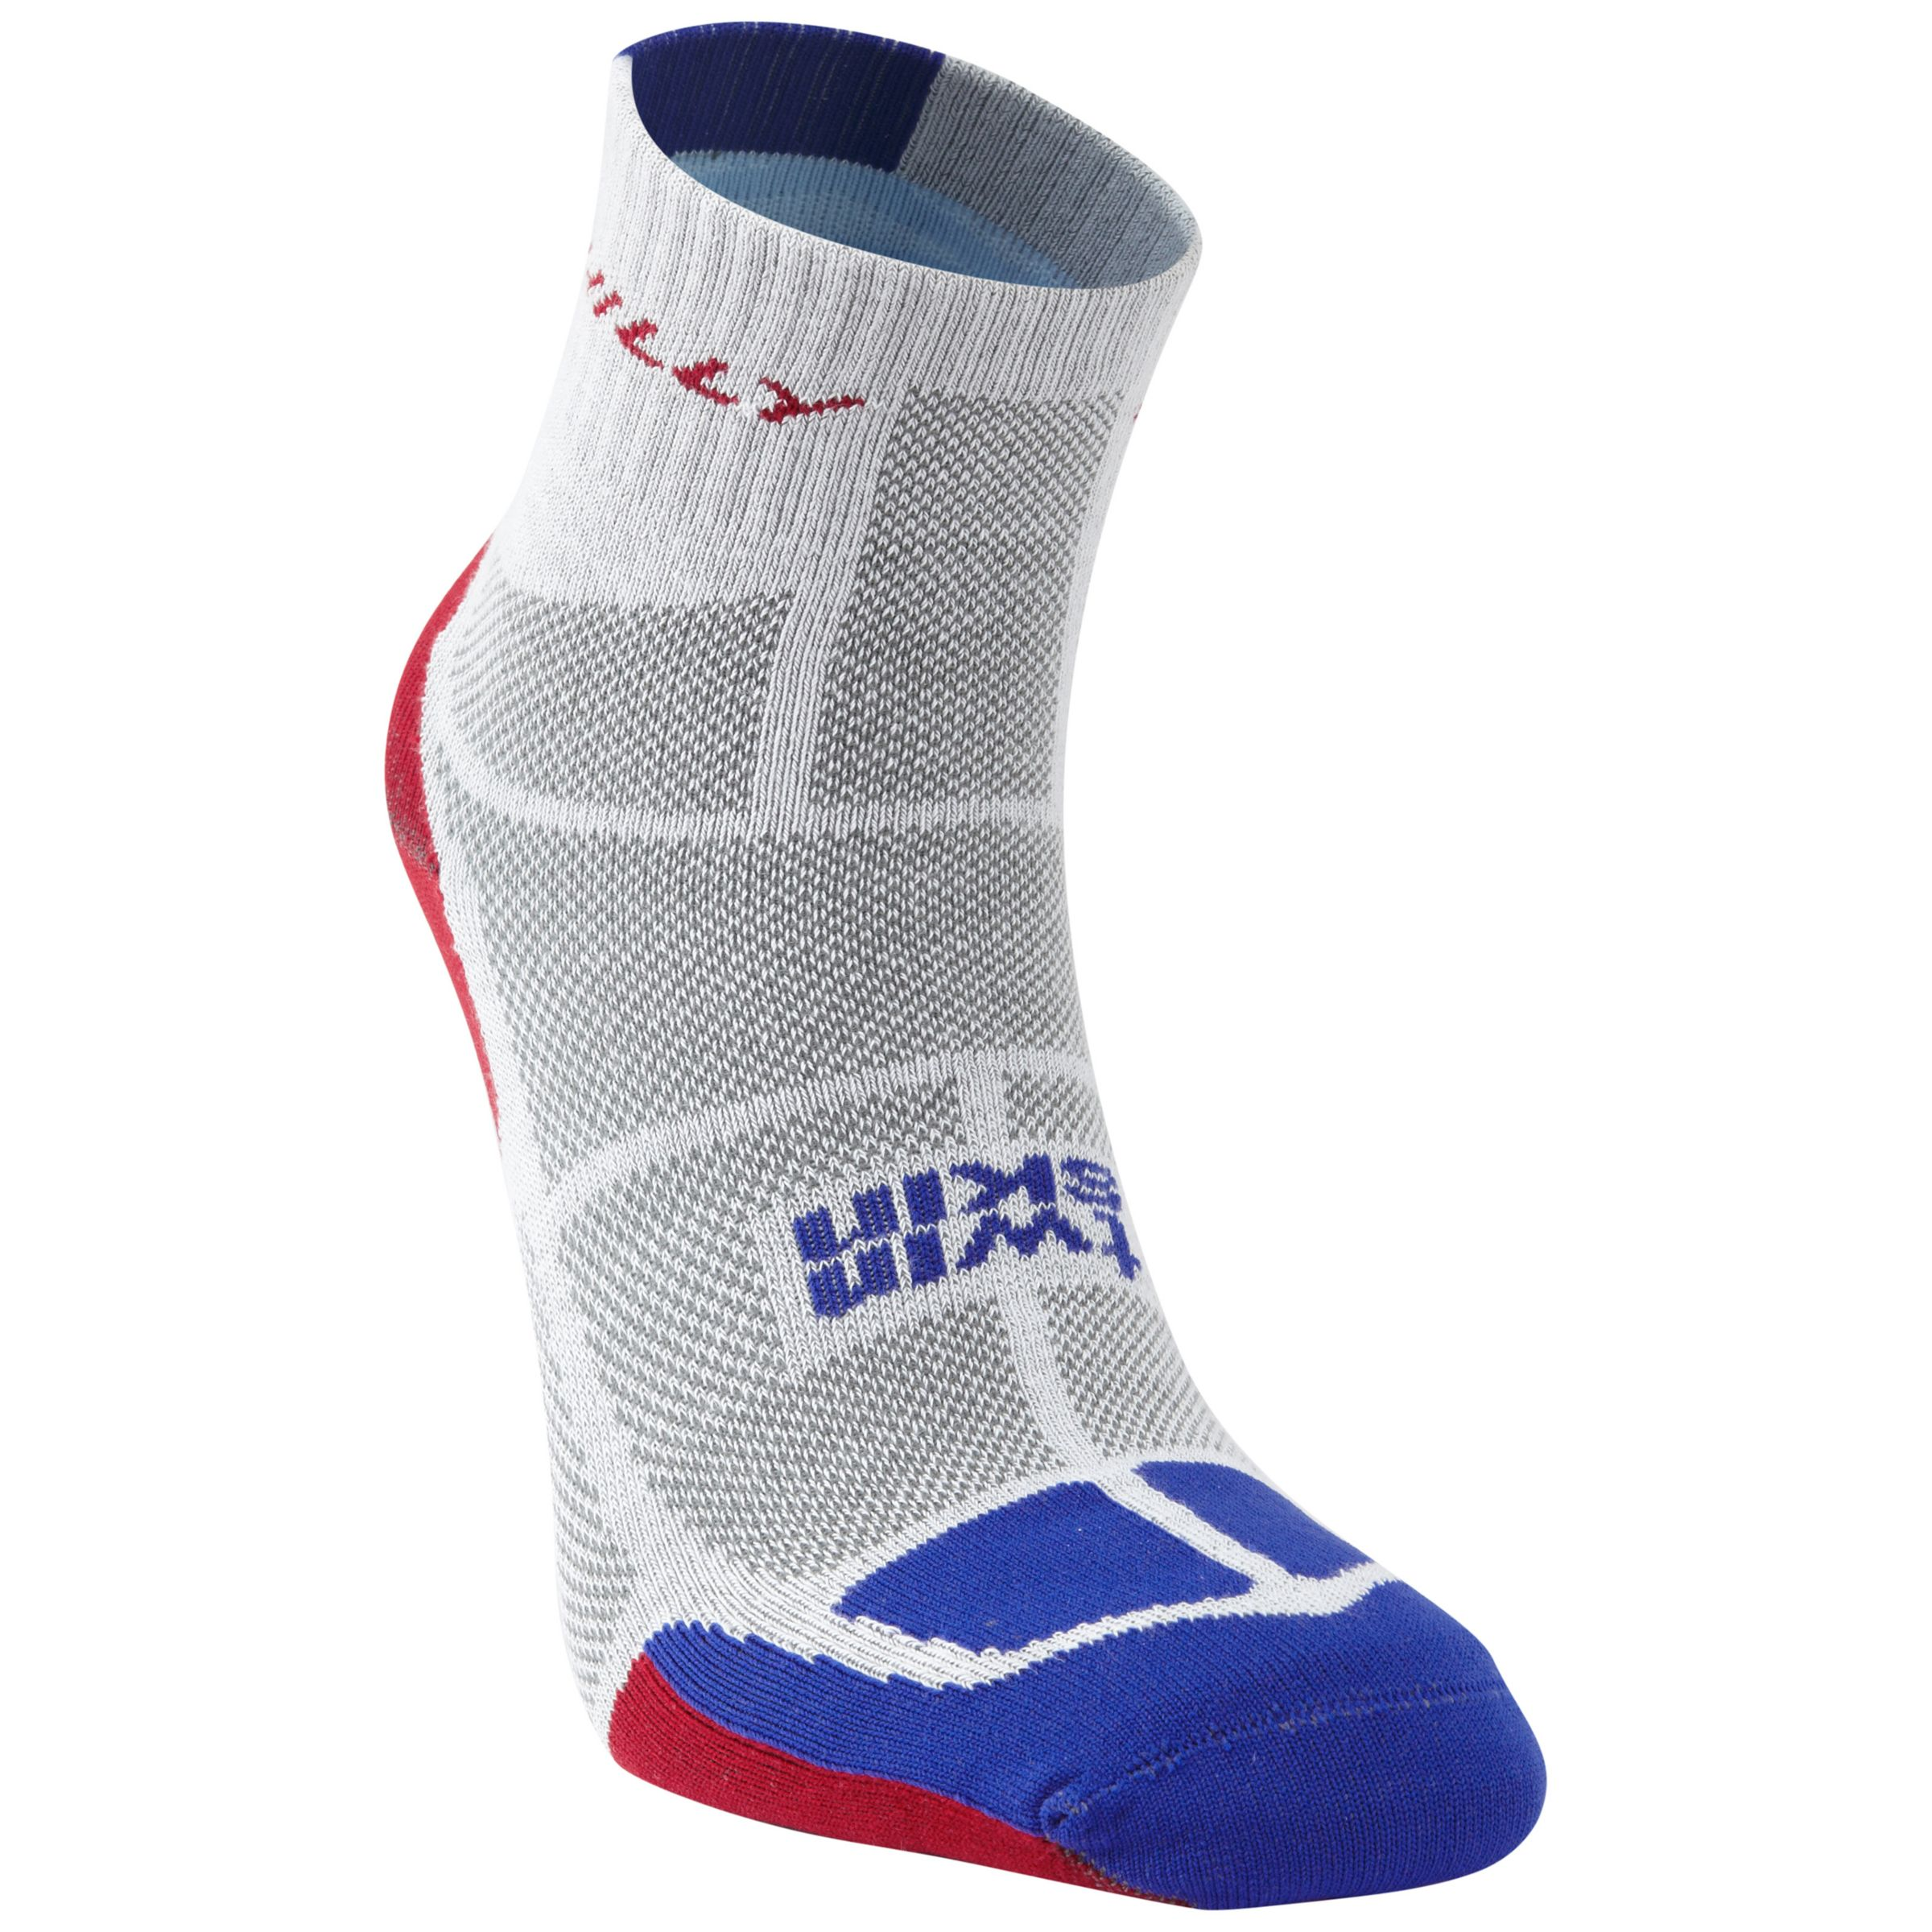 Hilly Hilly Twin Skin Socklets, White/Grey